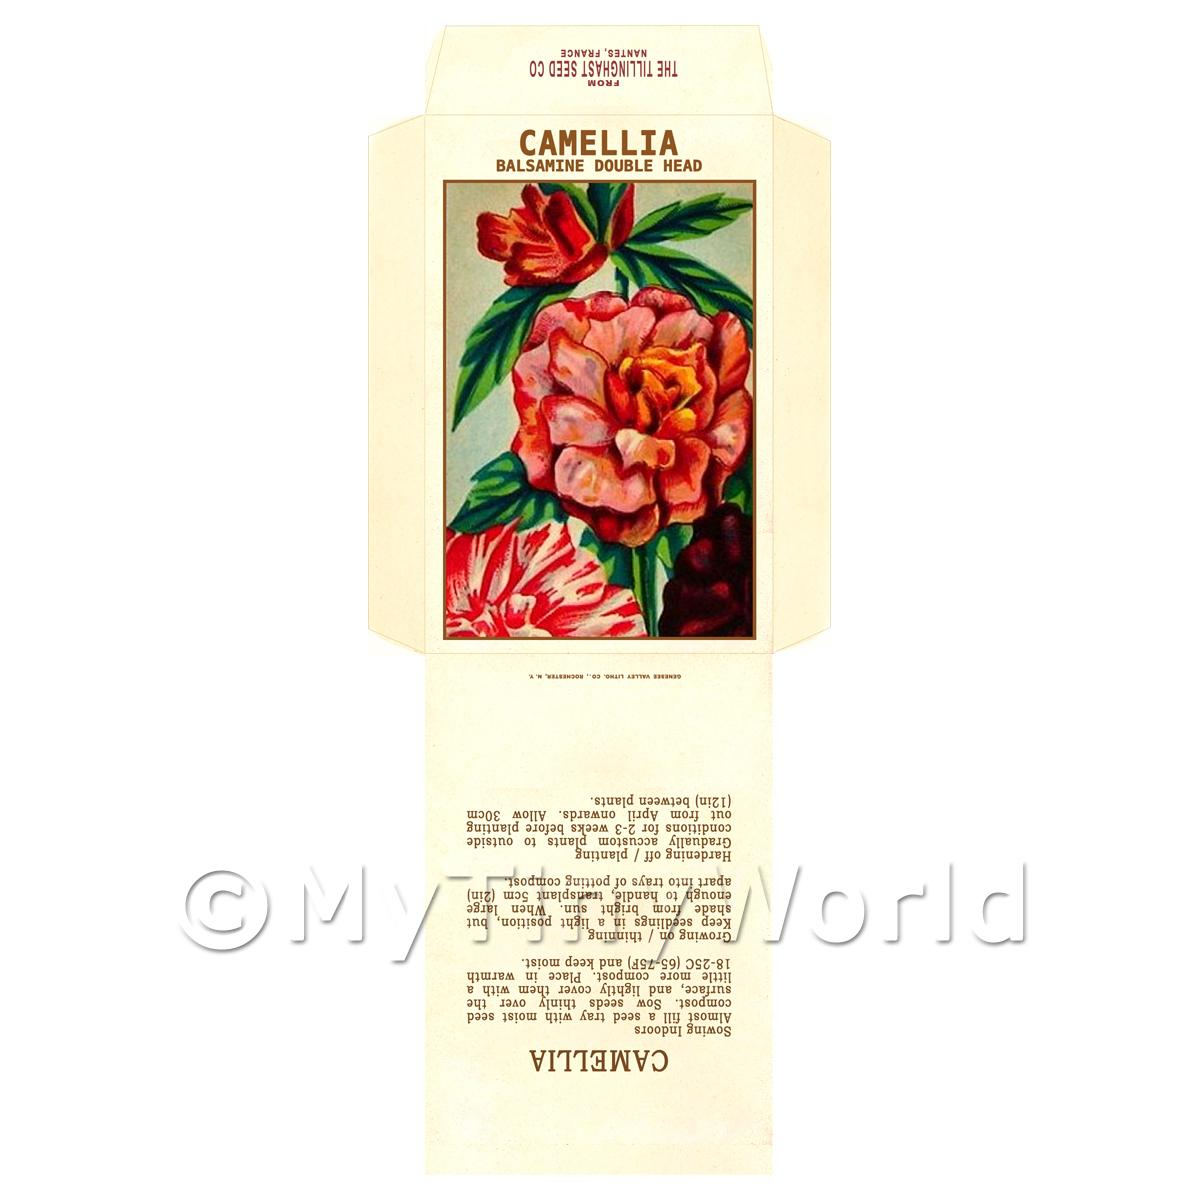 Camellia Balsamine Double Head Dolls House Miniature Seed Packet